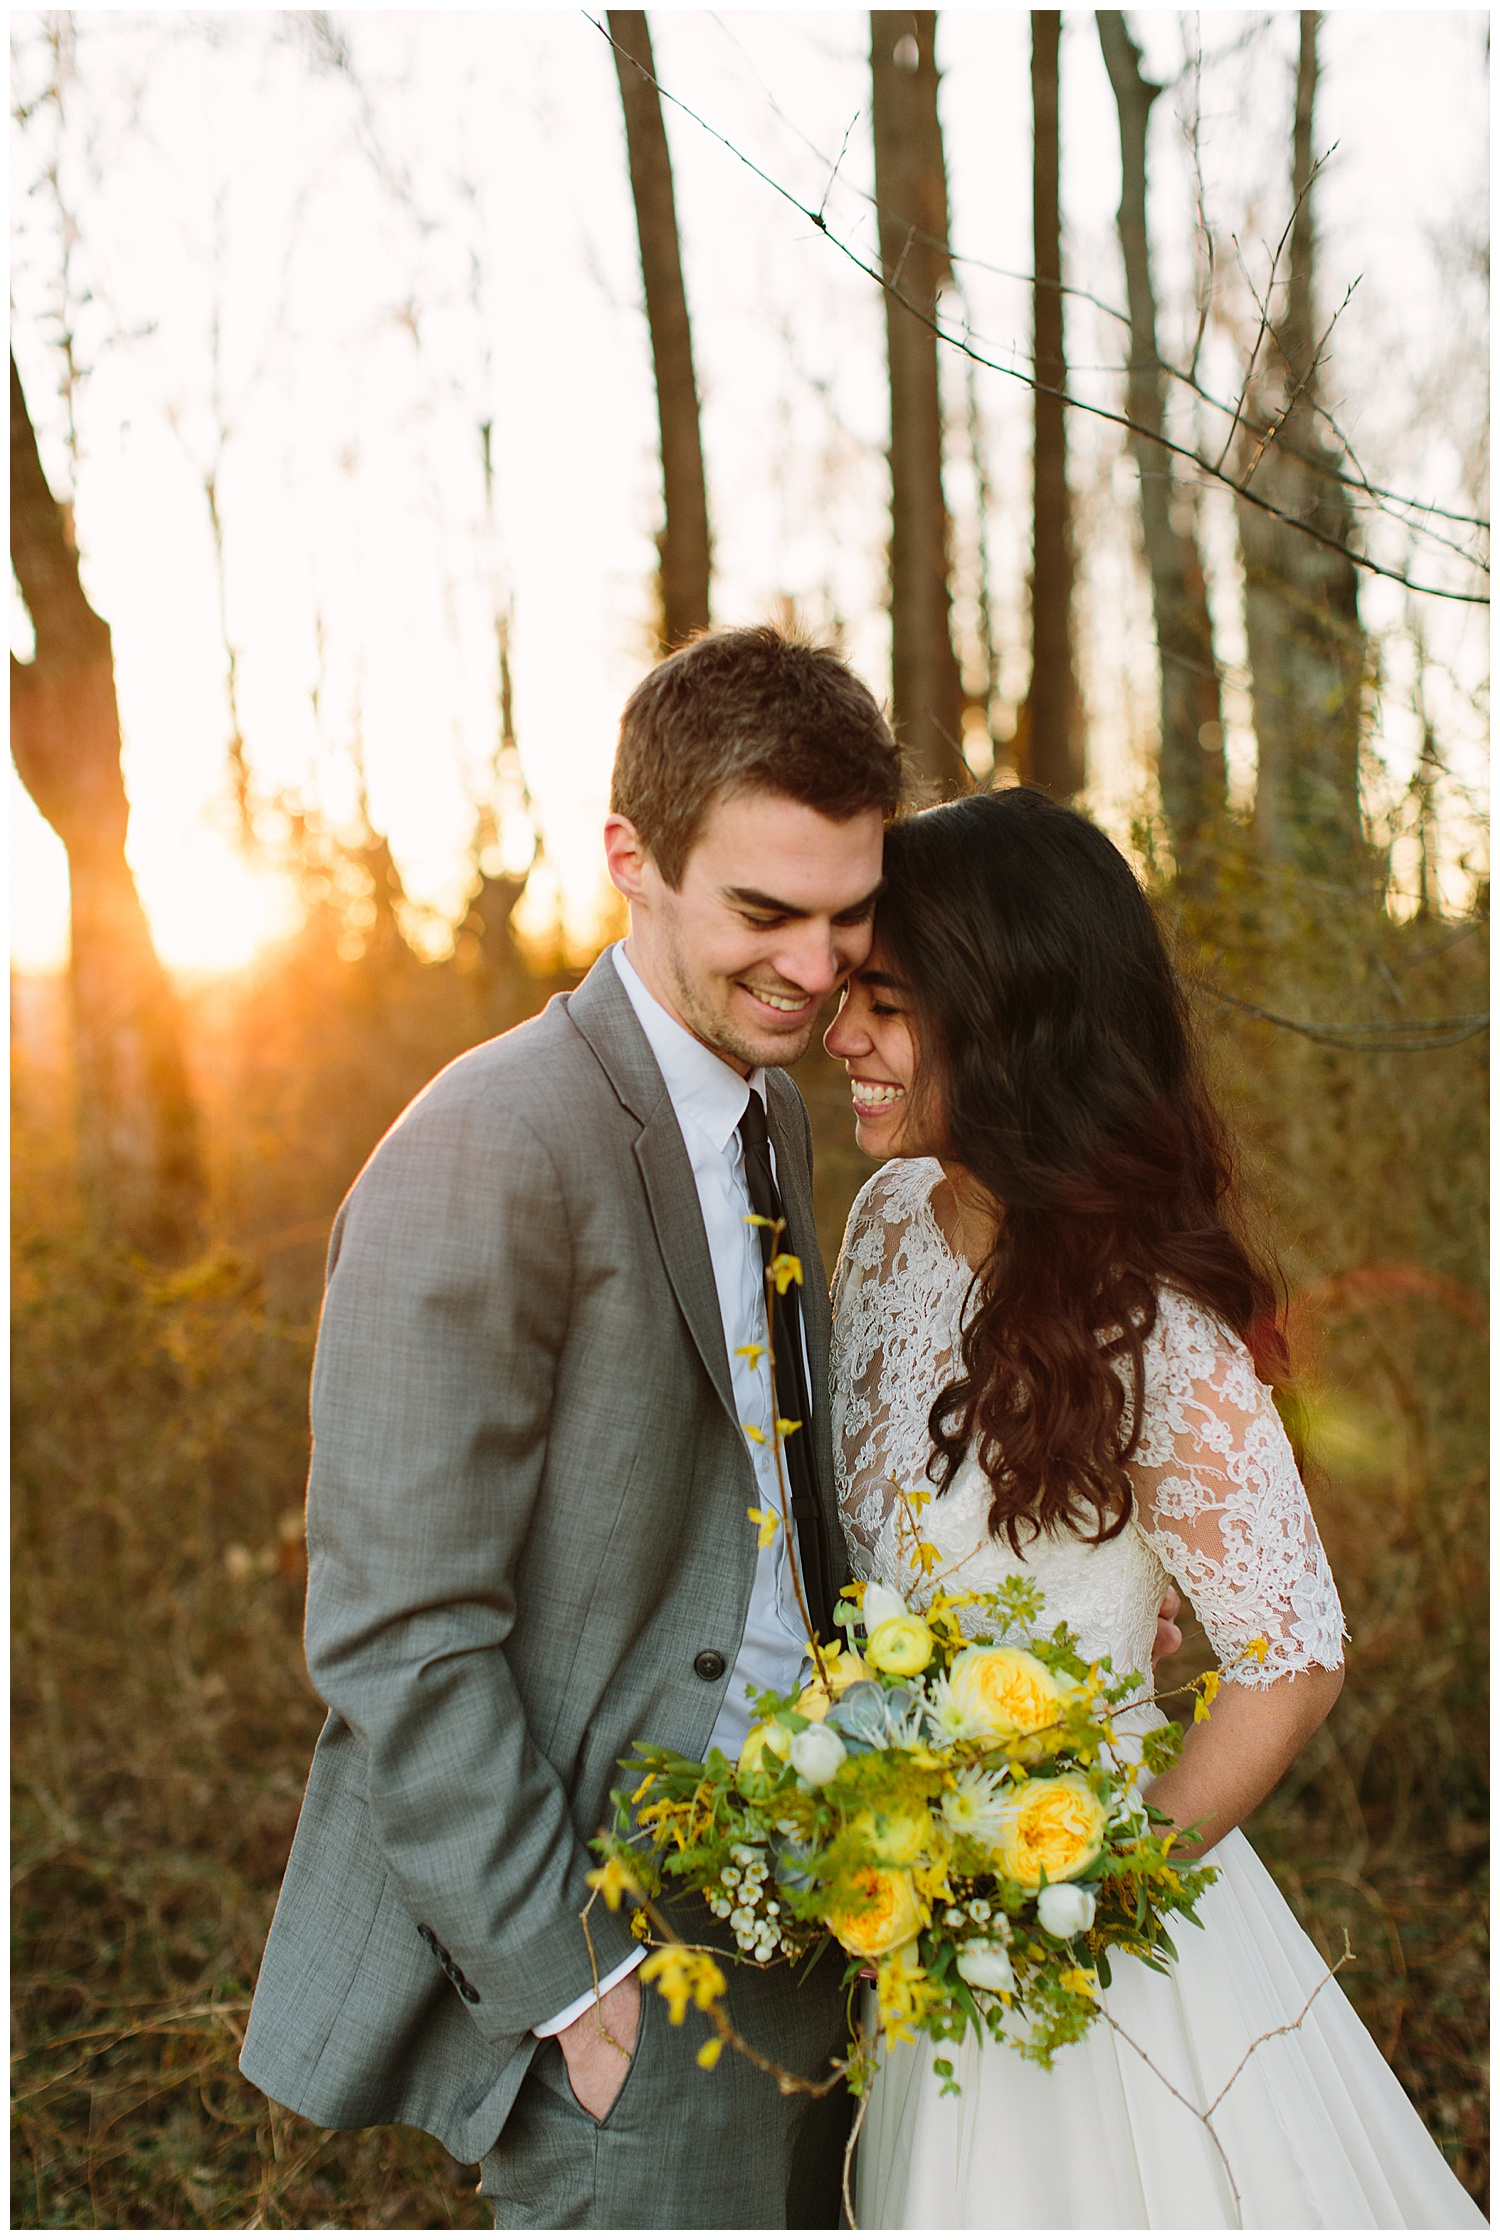 trent.and.kendra.photography.foxhollow.farm.elopement-29.jpg